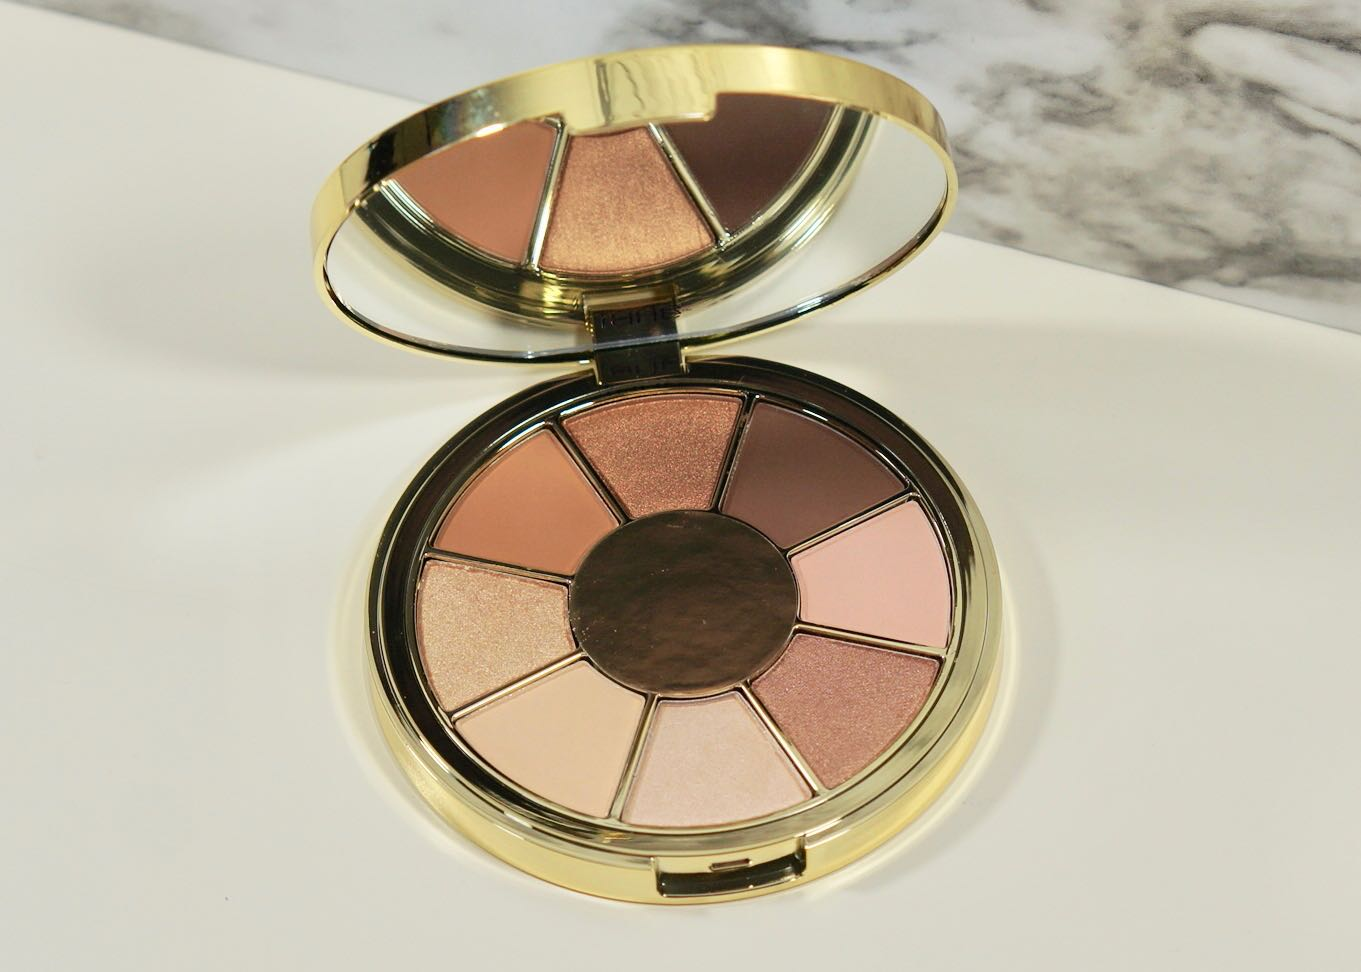 Tarte-Be you. Naturally. Eyeshadow paletteDSC01516.jpg